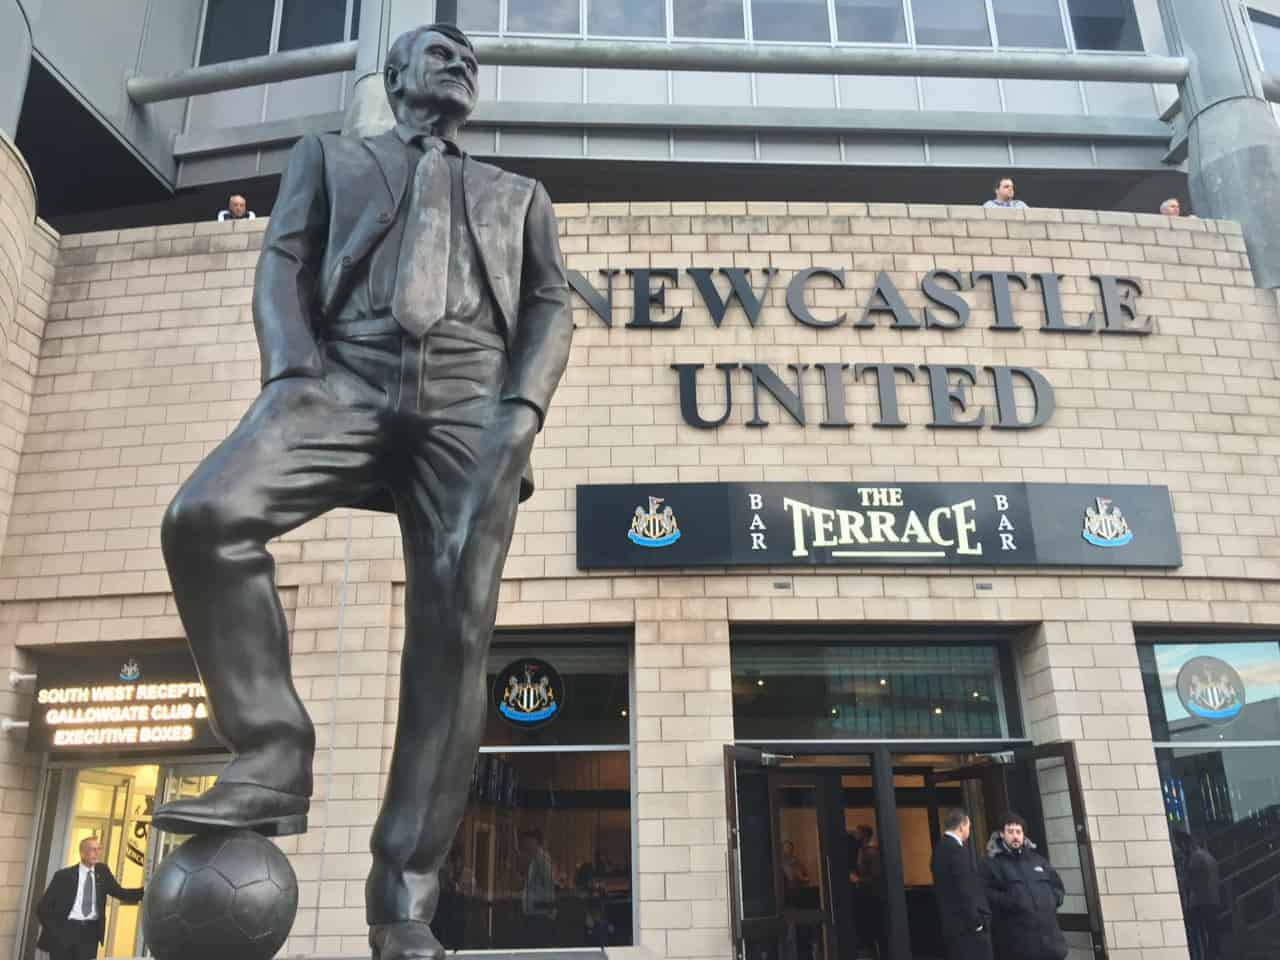 Sir Bobby Robson statue at Newcastle United St. James Park